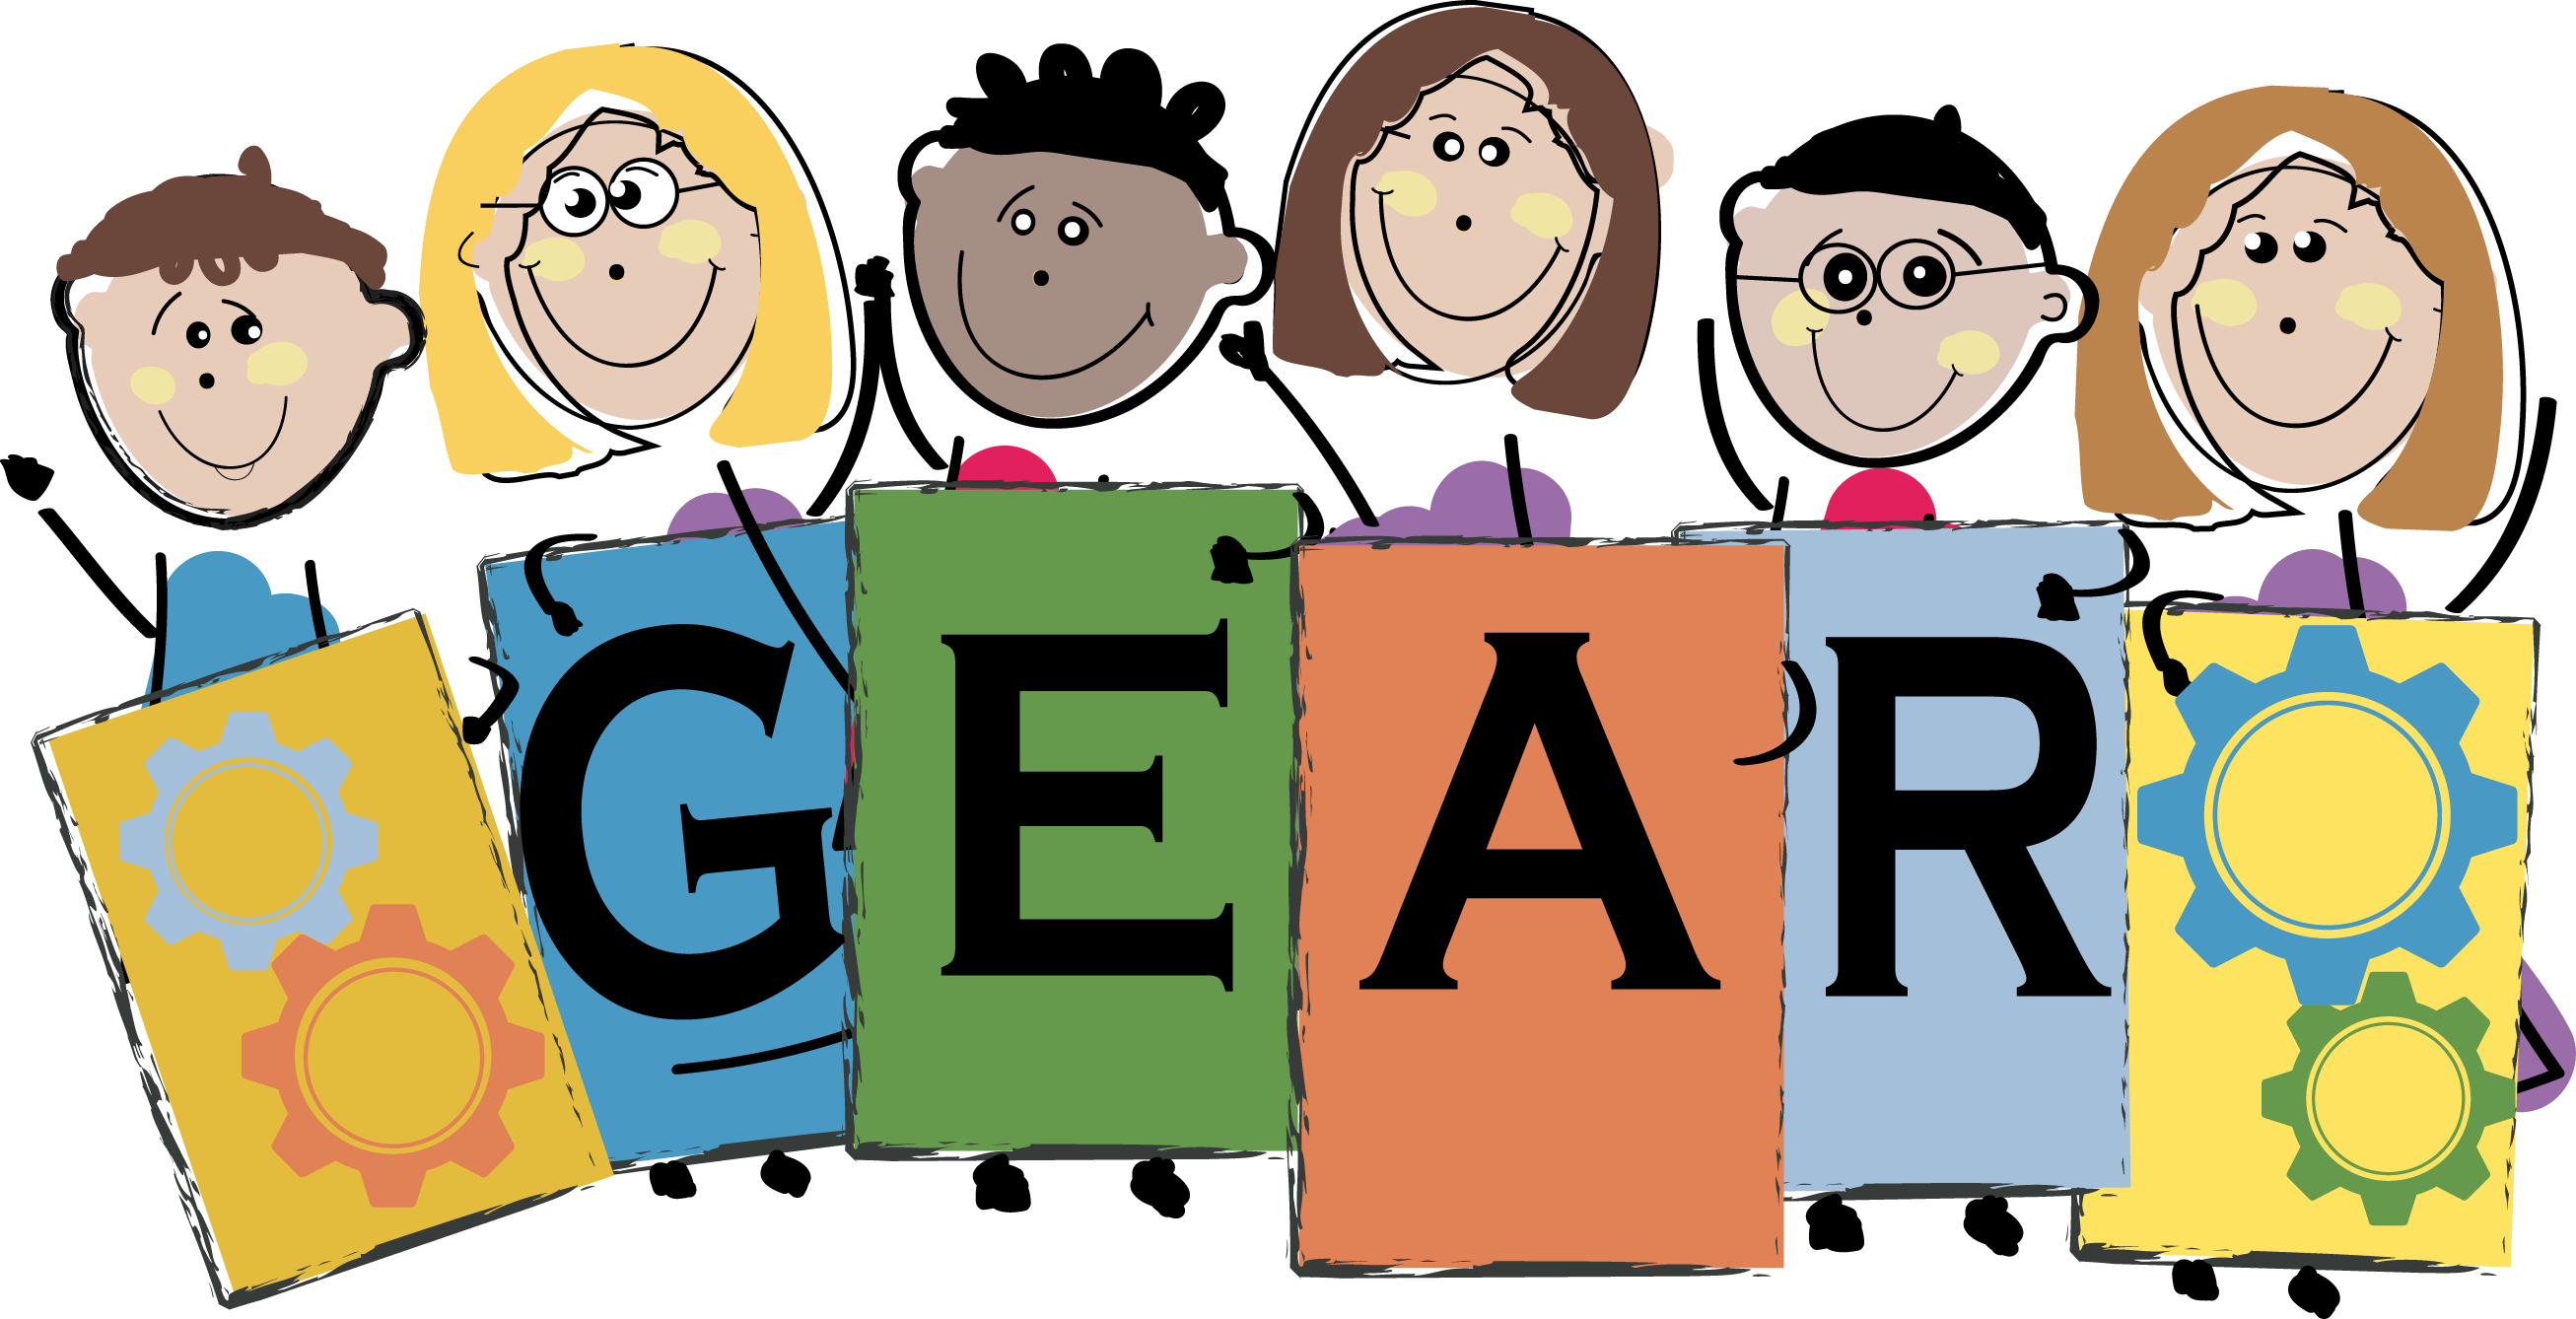 Information clipart problem identification. Gifted education with academic